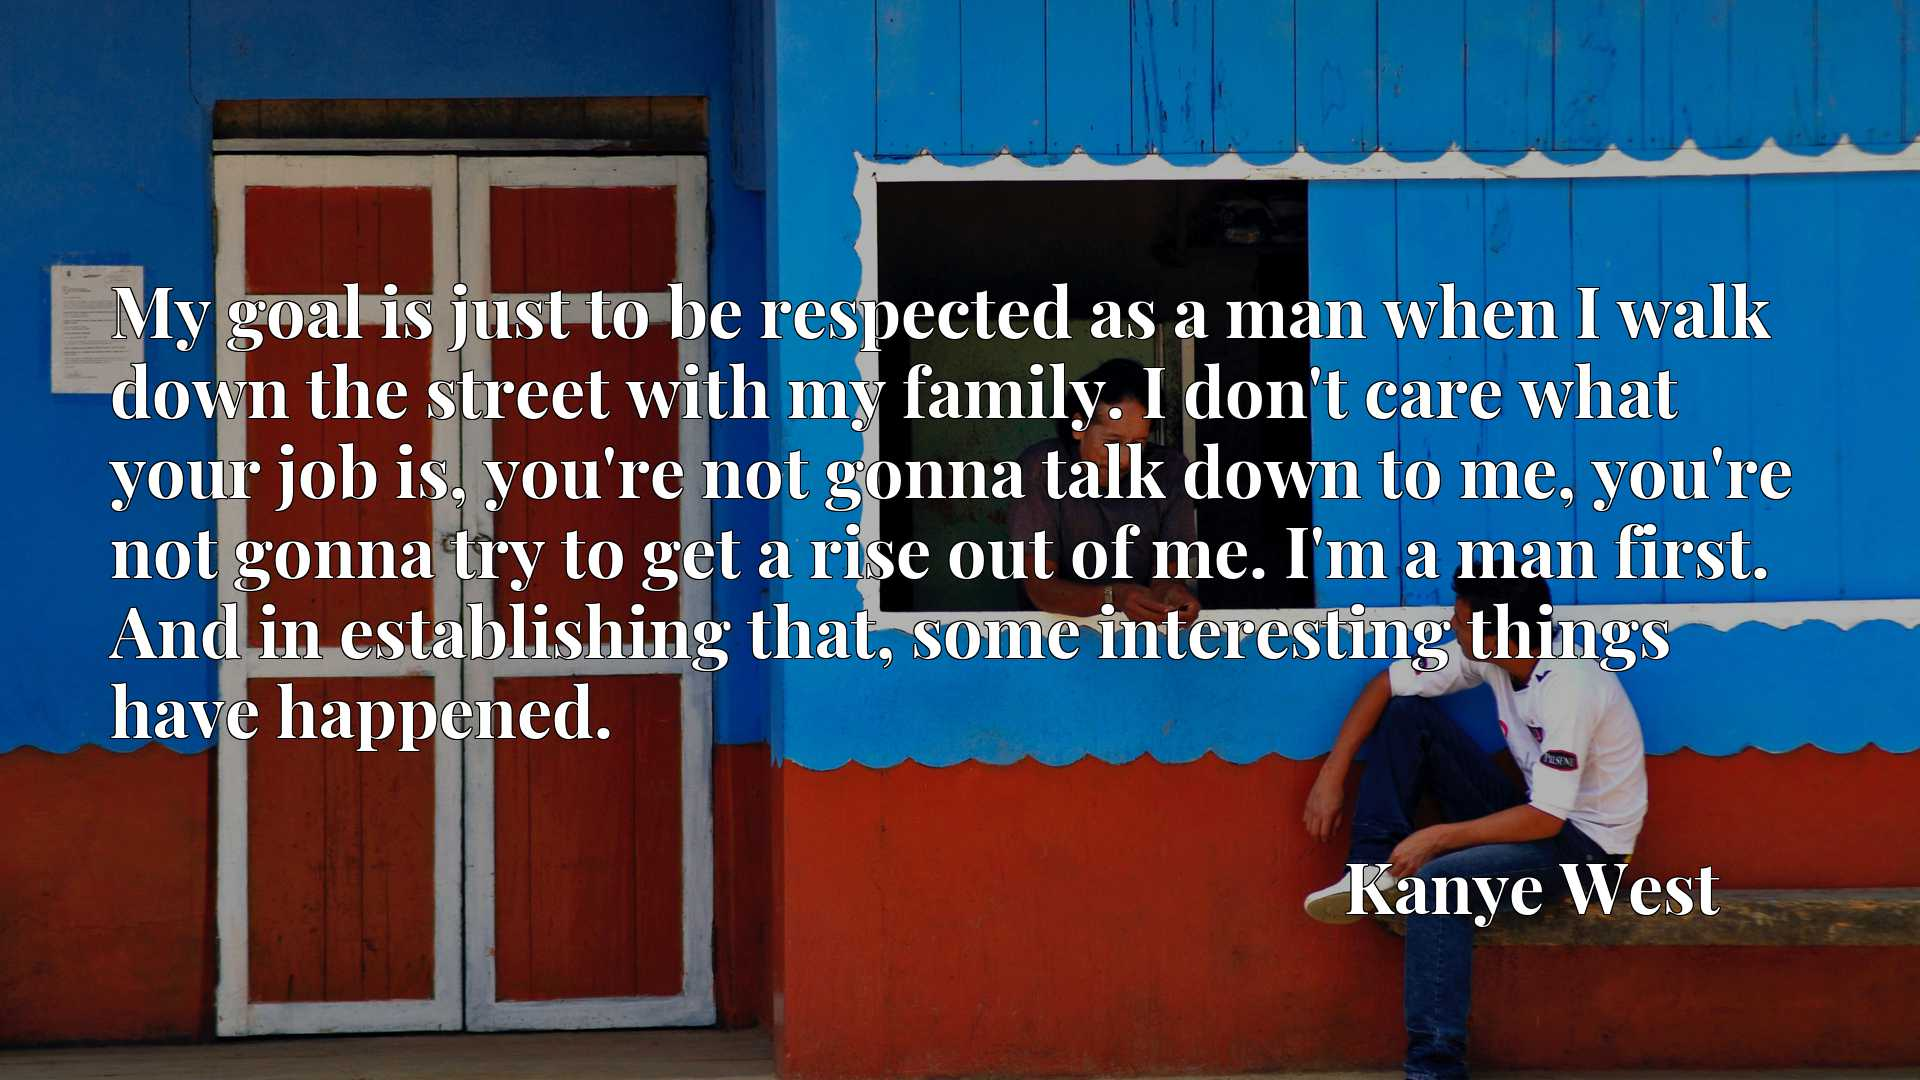 My goal is just to be respected as a man when I walk down the street with my family. I don't care what your job is, you're not gonna talk down to me, you're not gonna try to get a rise out of me. I'm a man first. And in establishing that, some interesting things have happened.